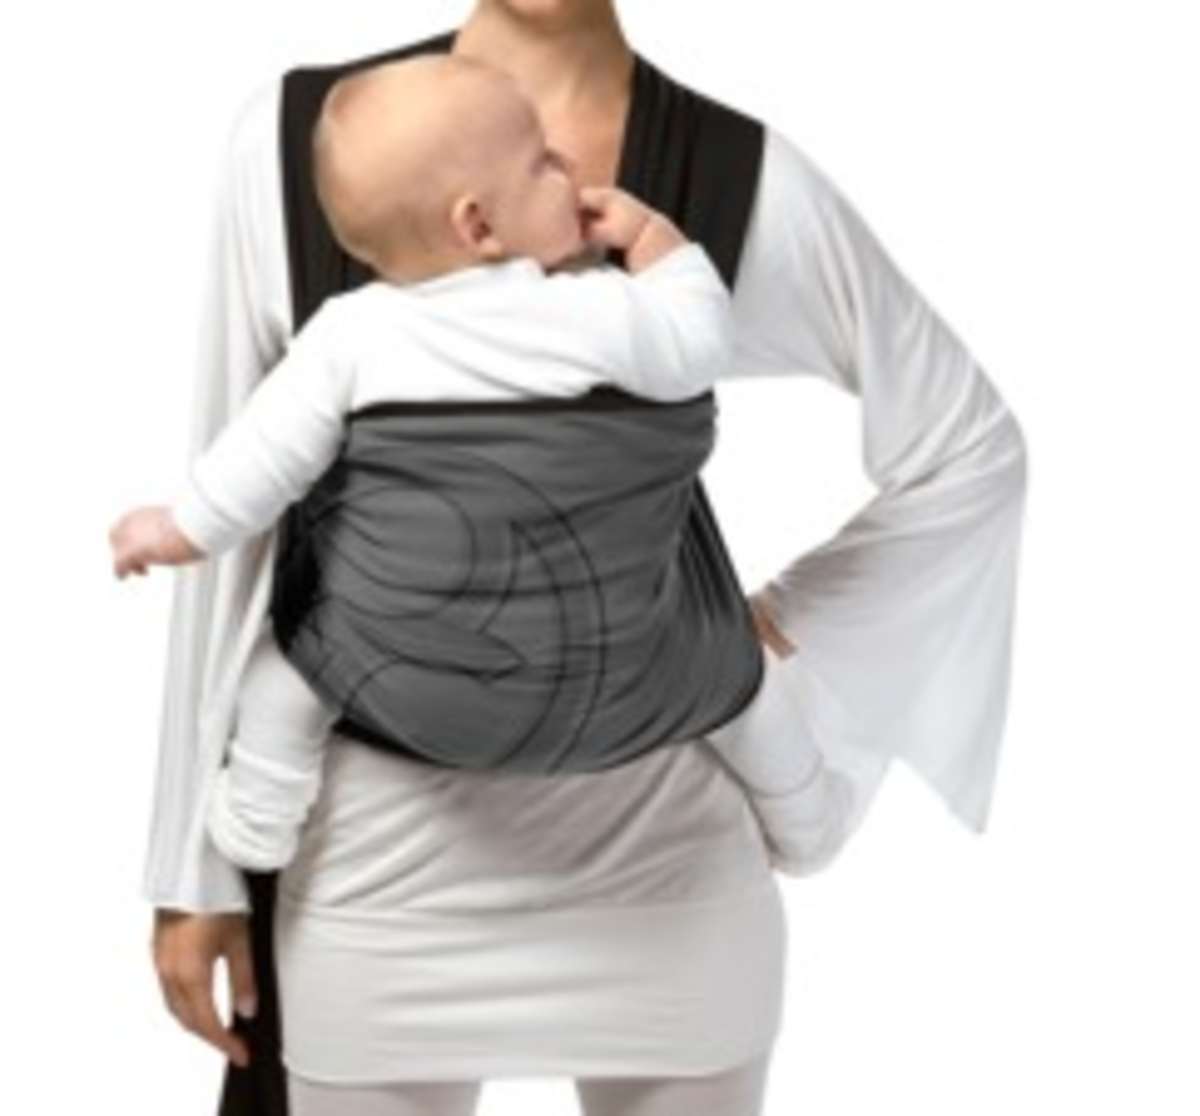 Where to Buy Second Hand Baby Carriers, Wraps, and Slings